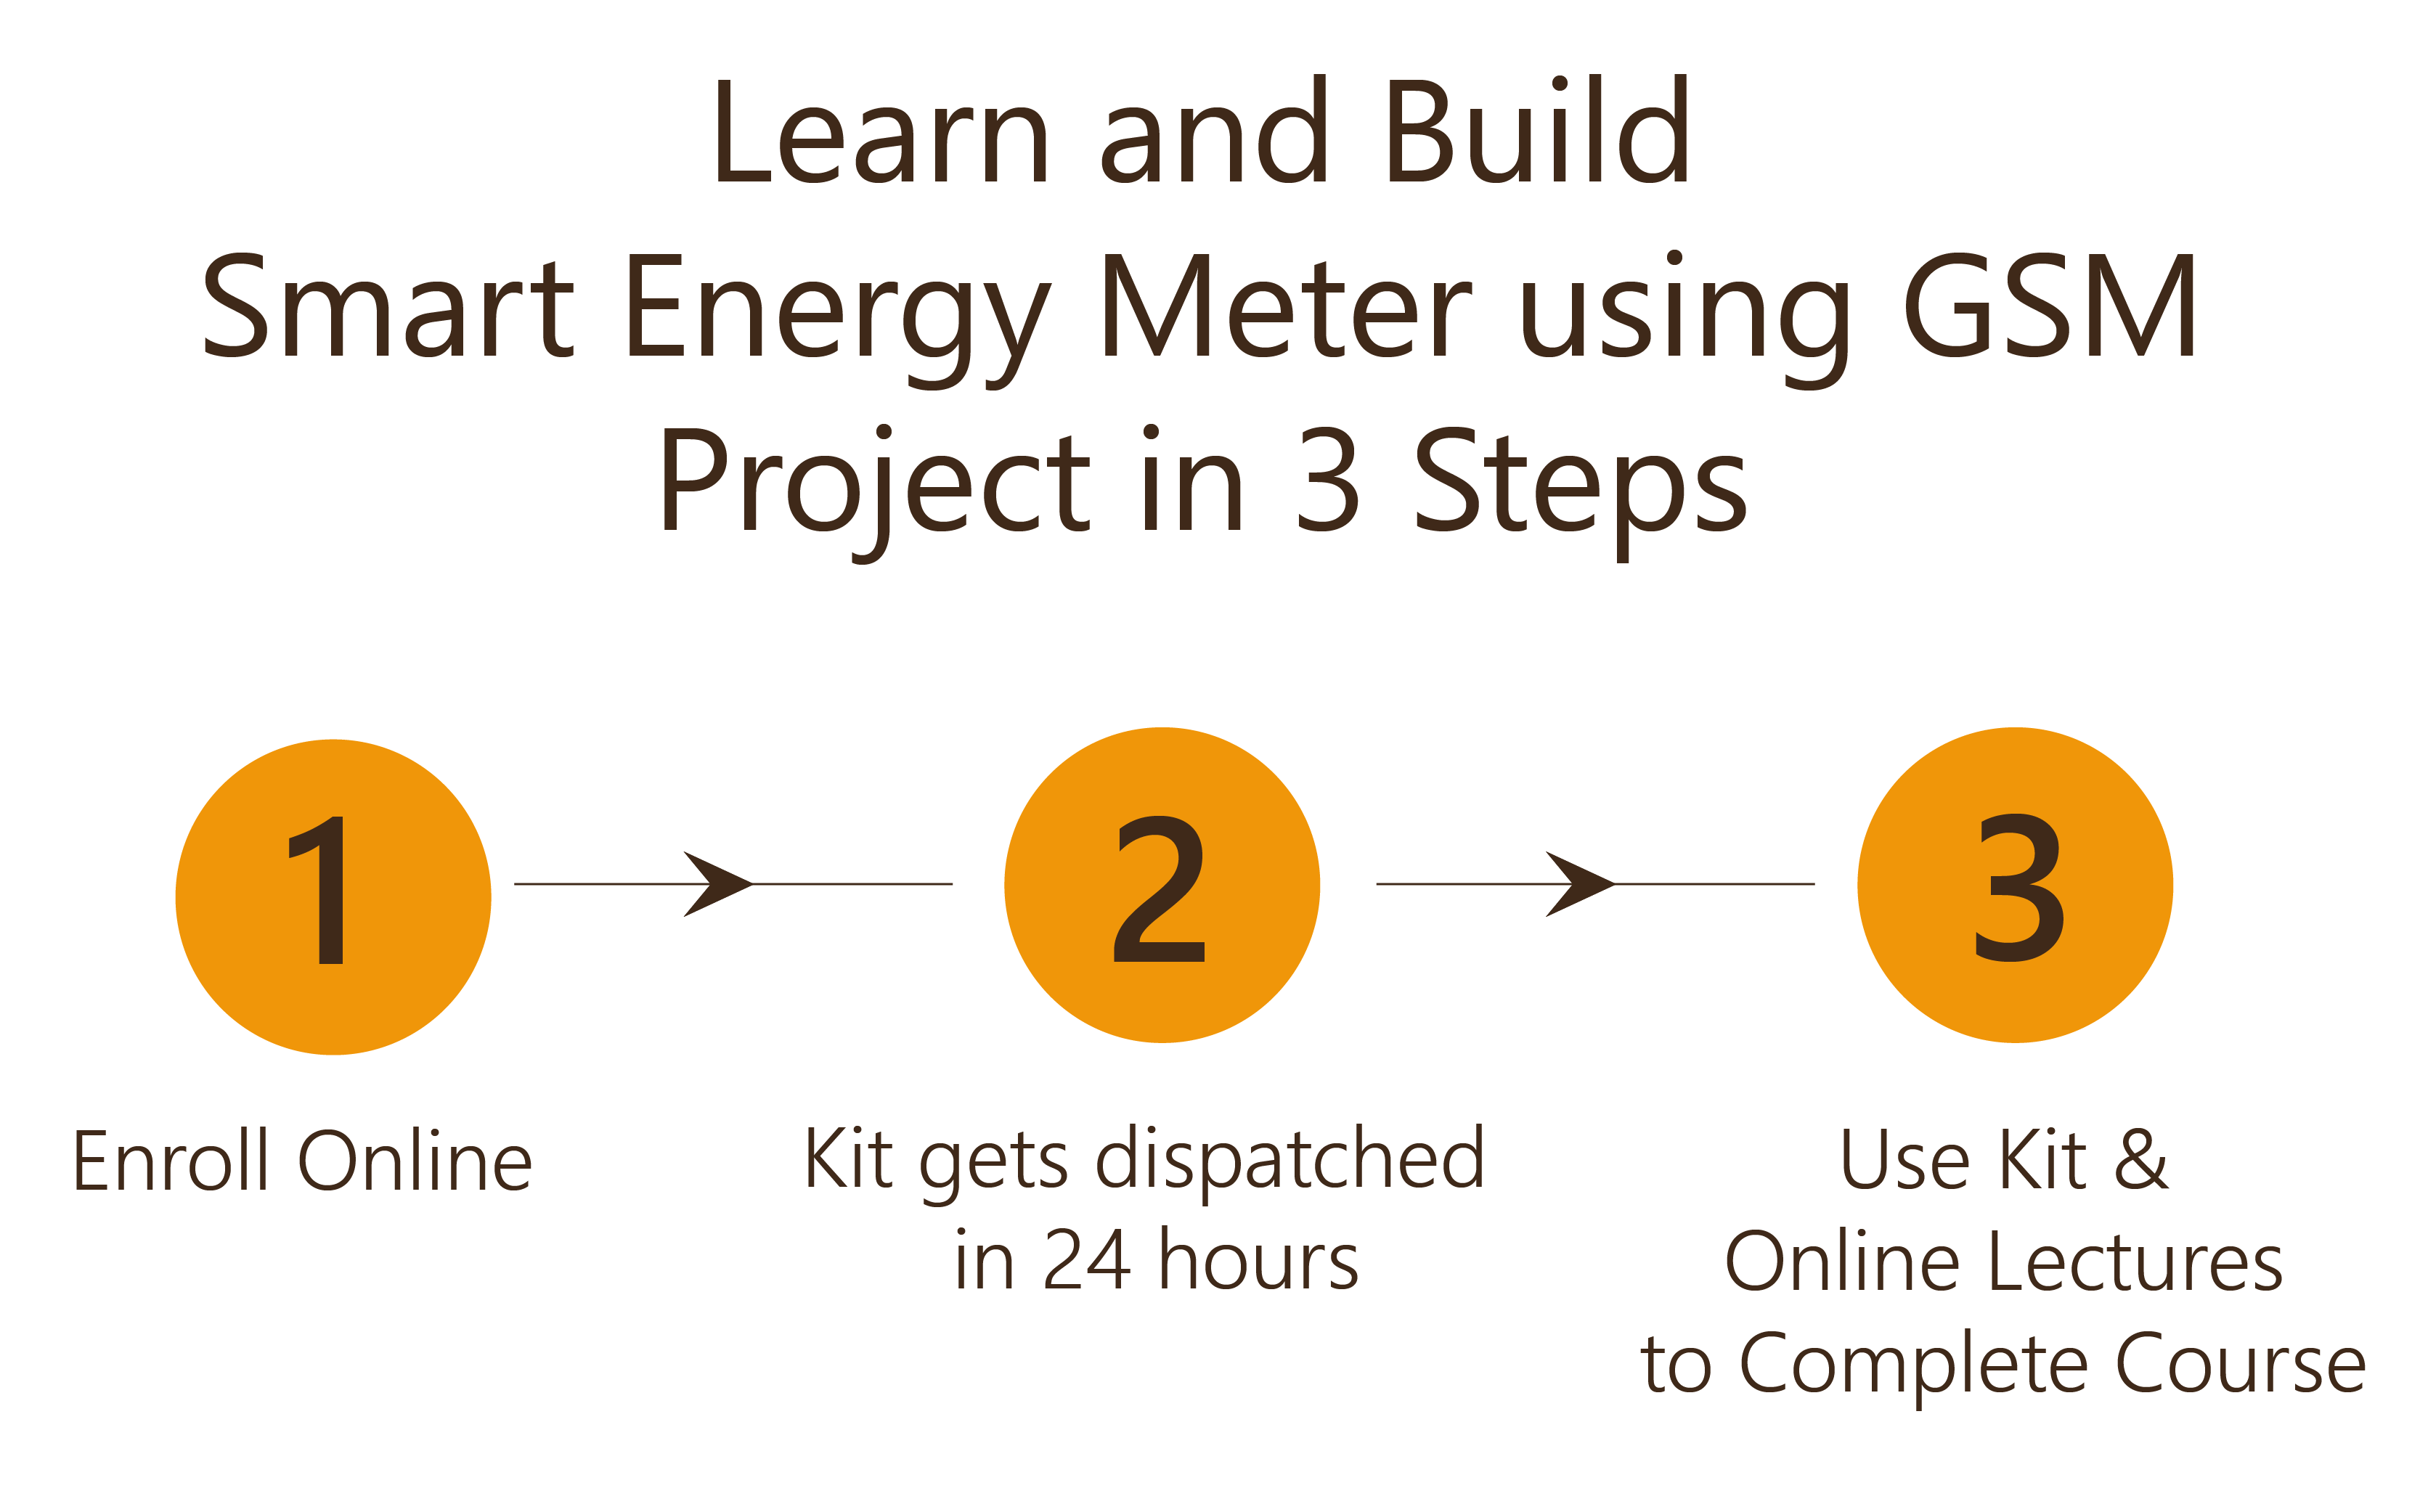 Learn and Build Smart Energy Meter using GSM Project in 3 Steps